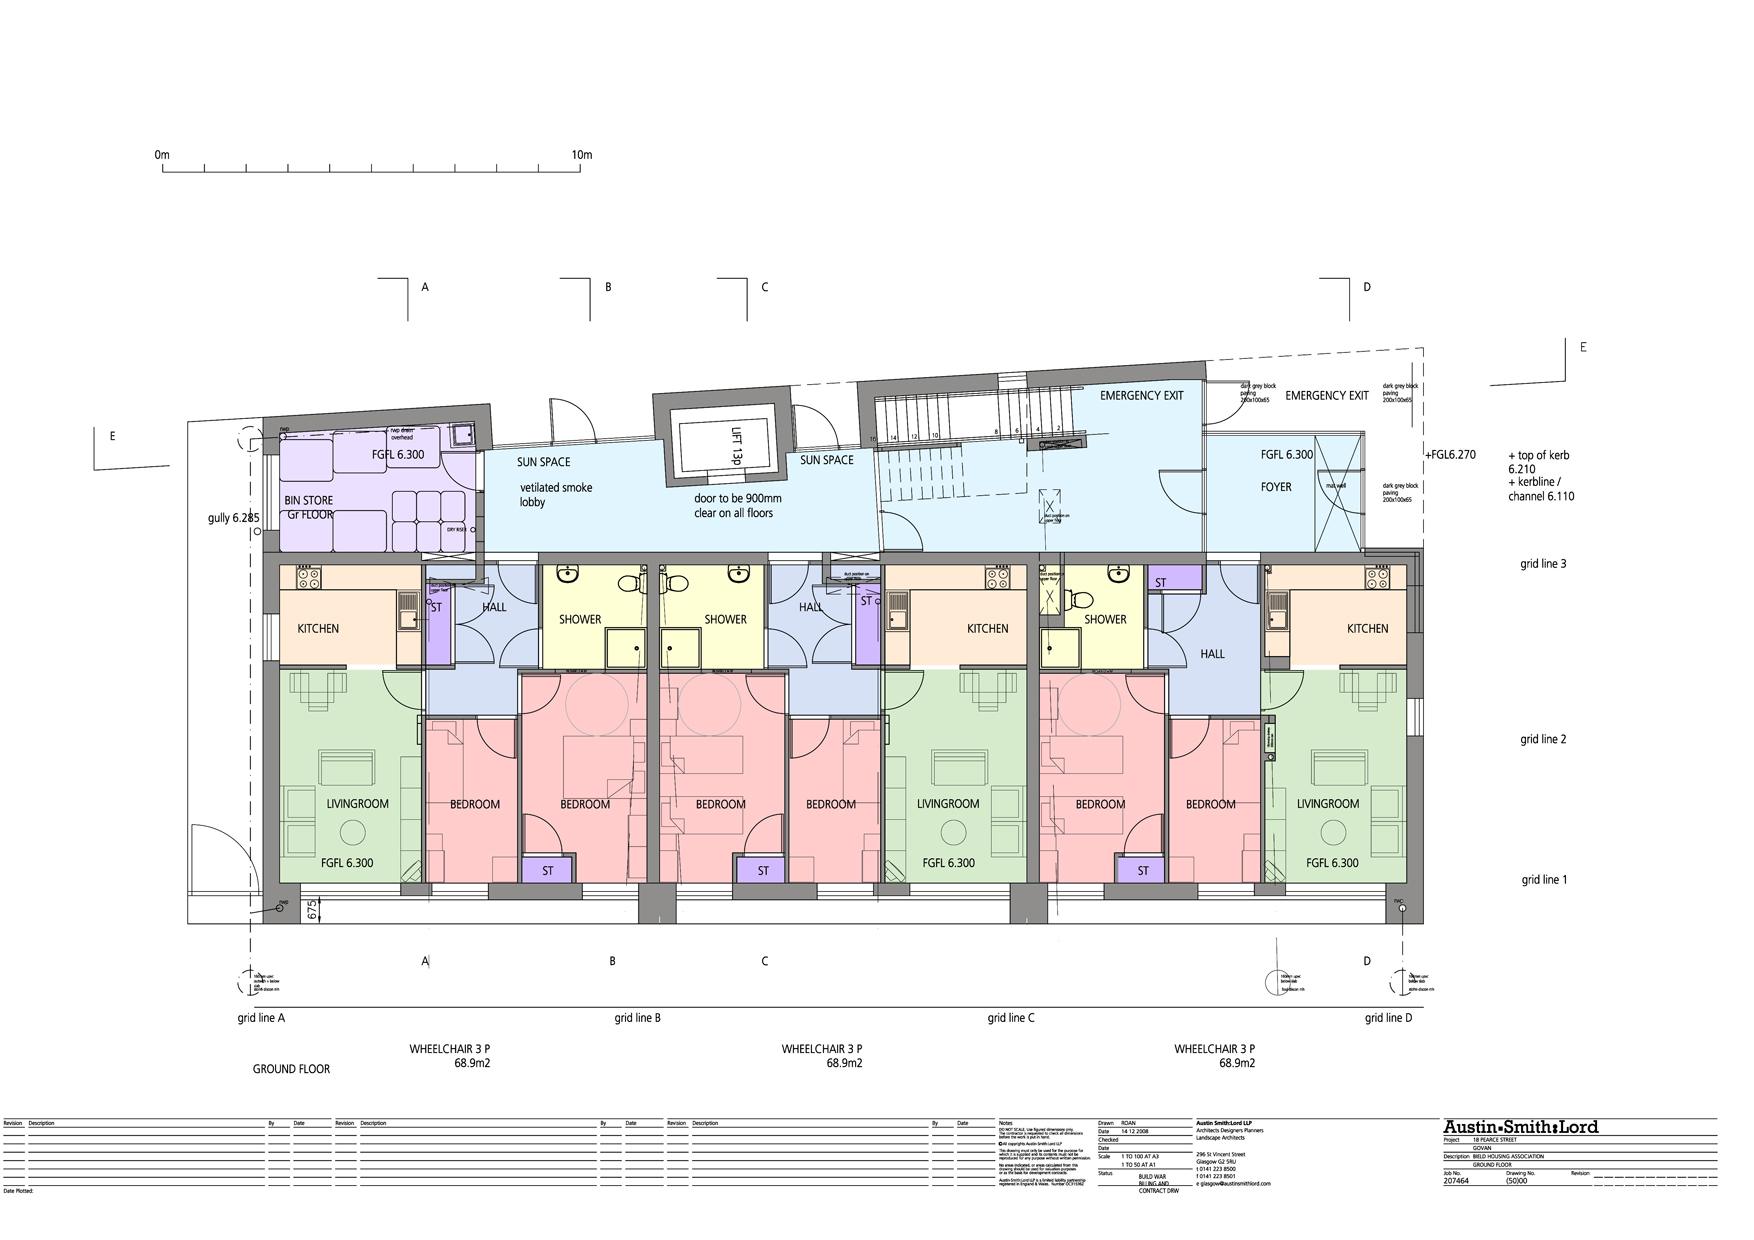 Displaying 18 gt  Images For - Yale University Dorm Floor Plans   Yale University Dorm Floor Plans